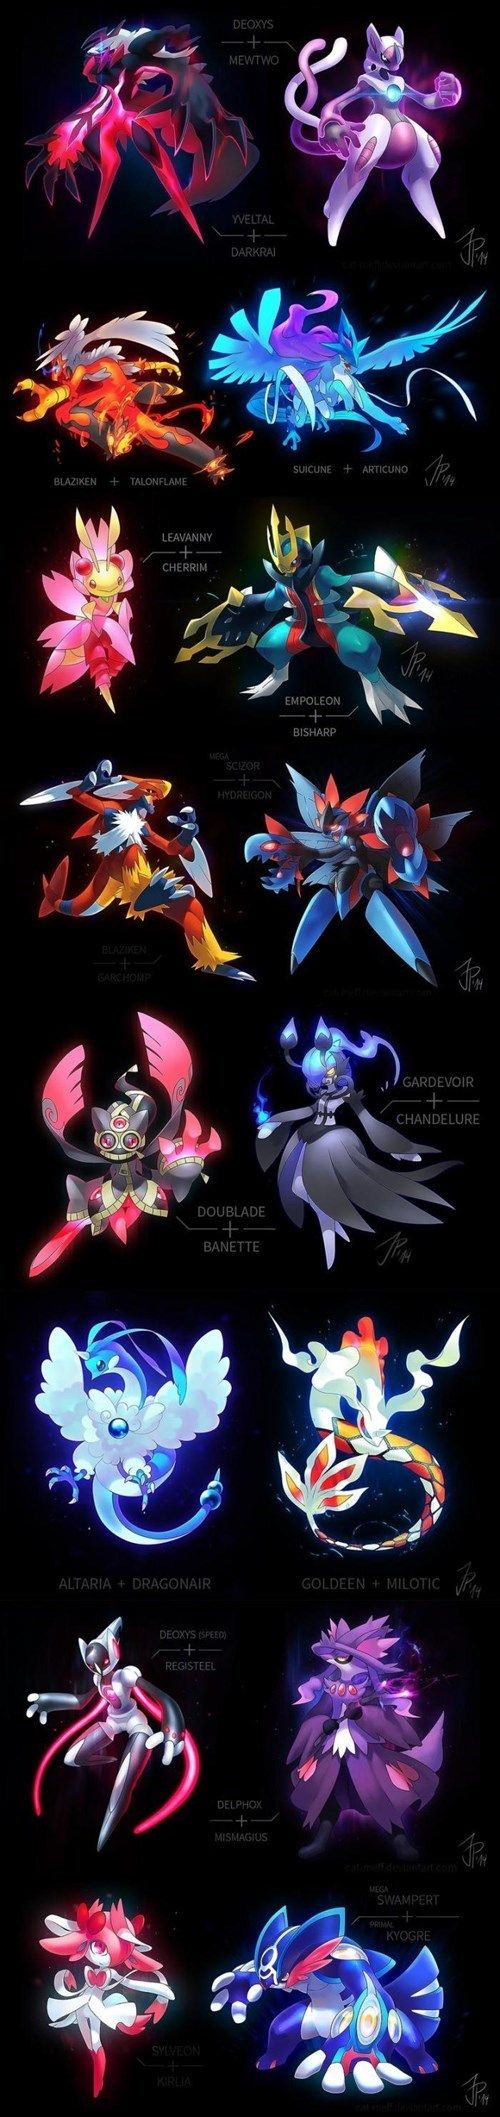 Pokéfusions-OMG GIVE ME ALL OF THEM ESPECIALLY THE YVELTAL, KIRLIA, AND MILOTIC ONES!